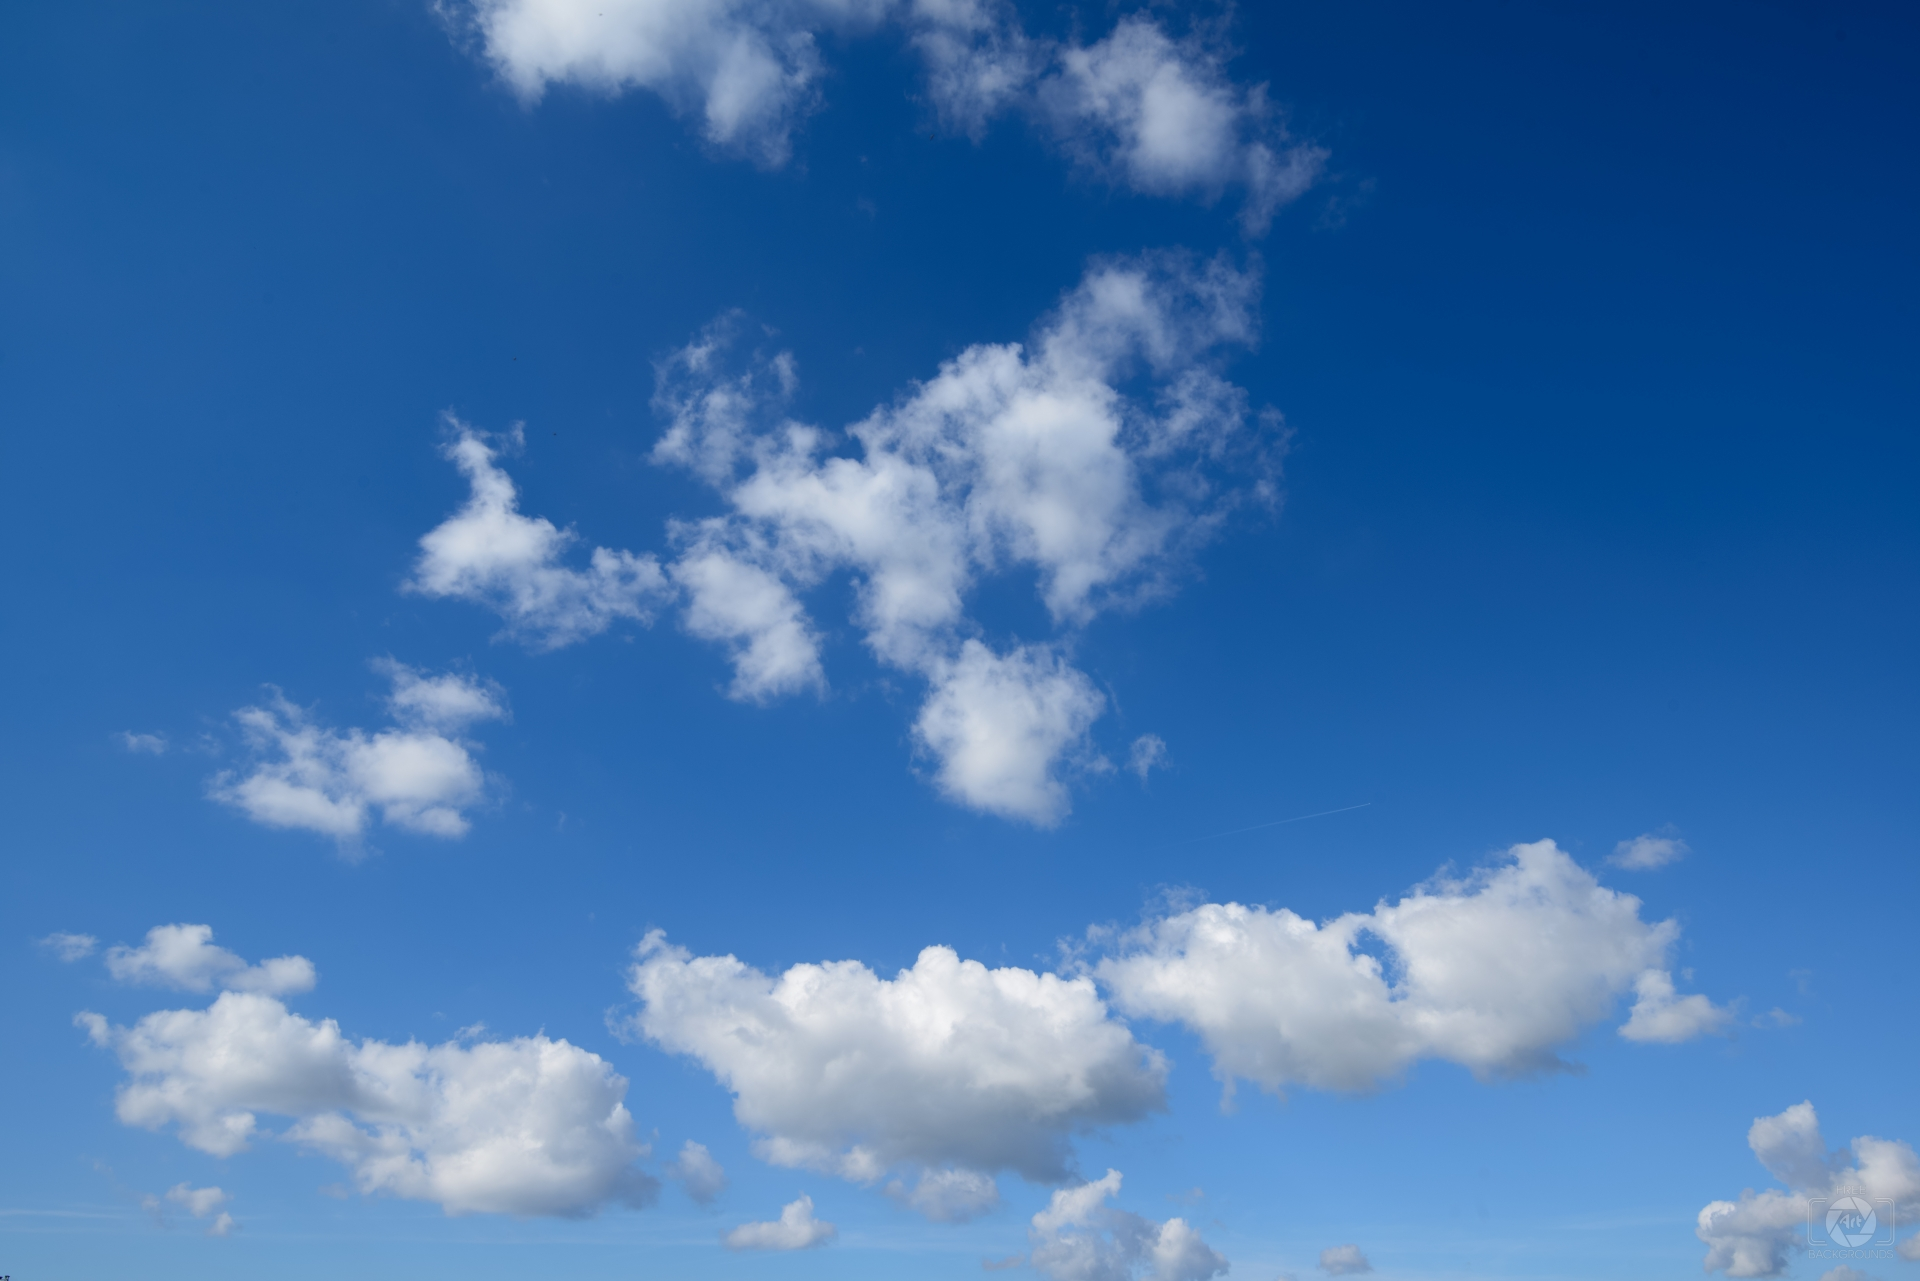 Beautiful Blue Sky with Clouds Background - High-quality Free ...